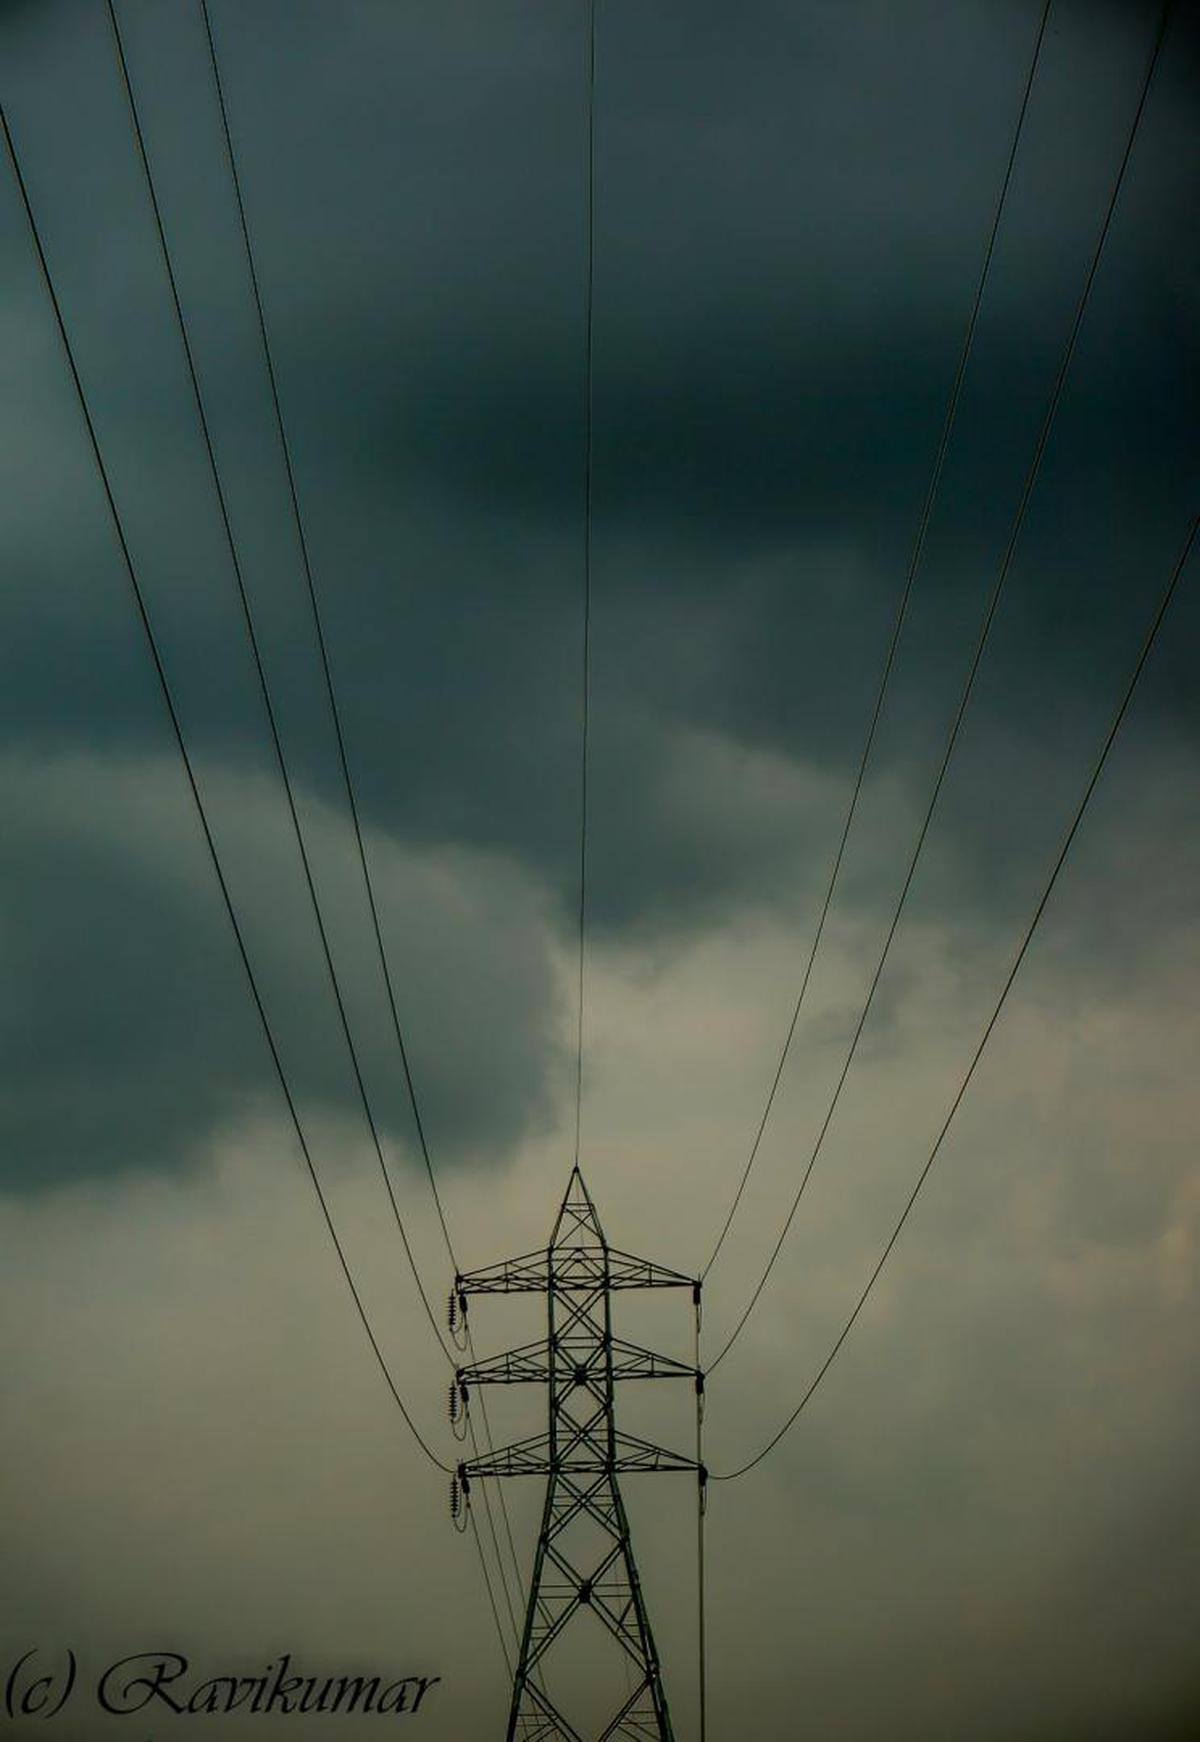 Image of Overhead power line, Electricity, Sky, Electrical supply, Wire, Transmission tower etc.